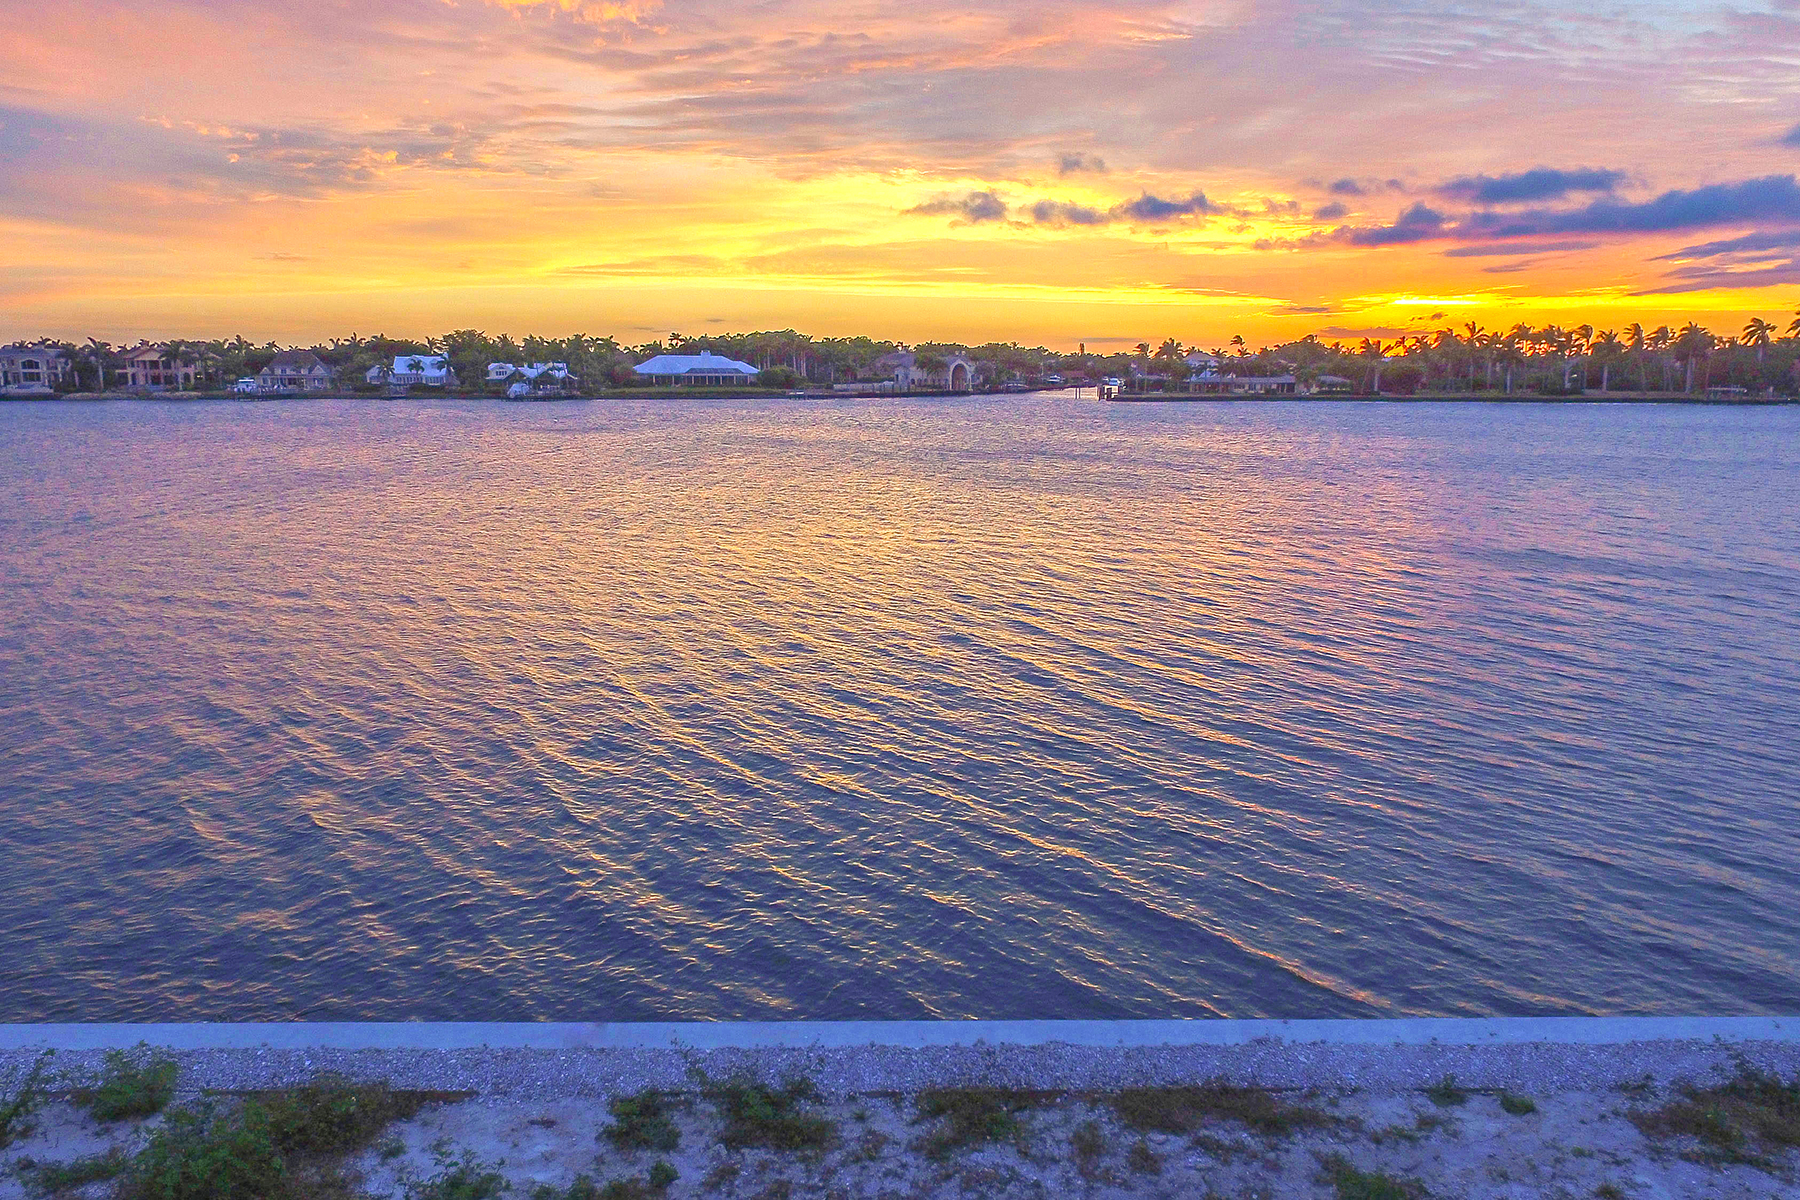 Land for Sale at ROYAL HARBOR 2280 Kingfish Rd, Naples, Florida 34102 United States